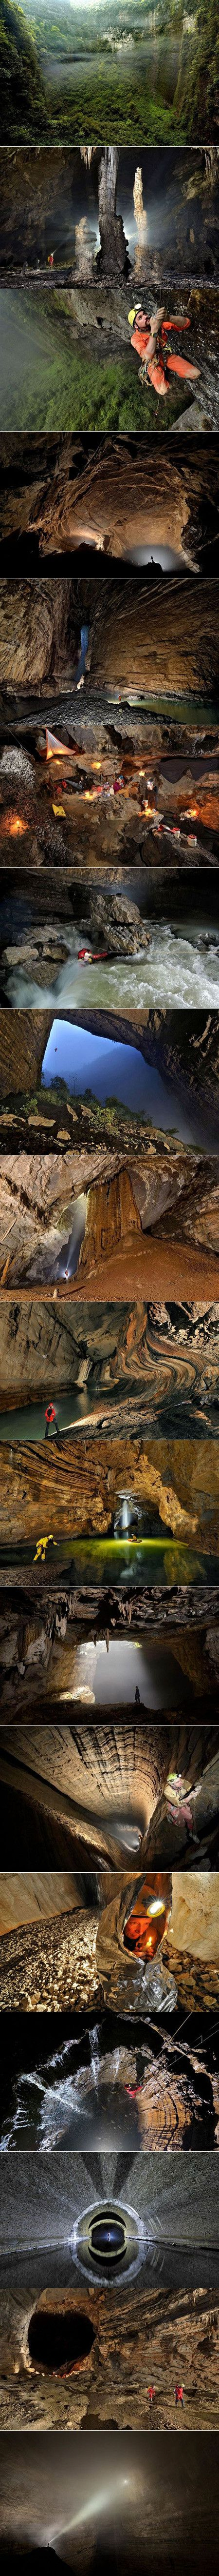 18 Mind-Blowing Pictures of Er Wang Dong, a Giant Cave with its Own Weather System - TechEBlog